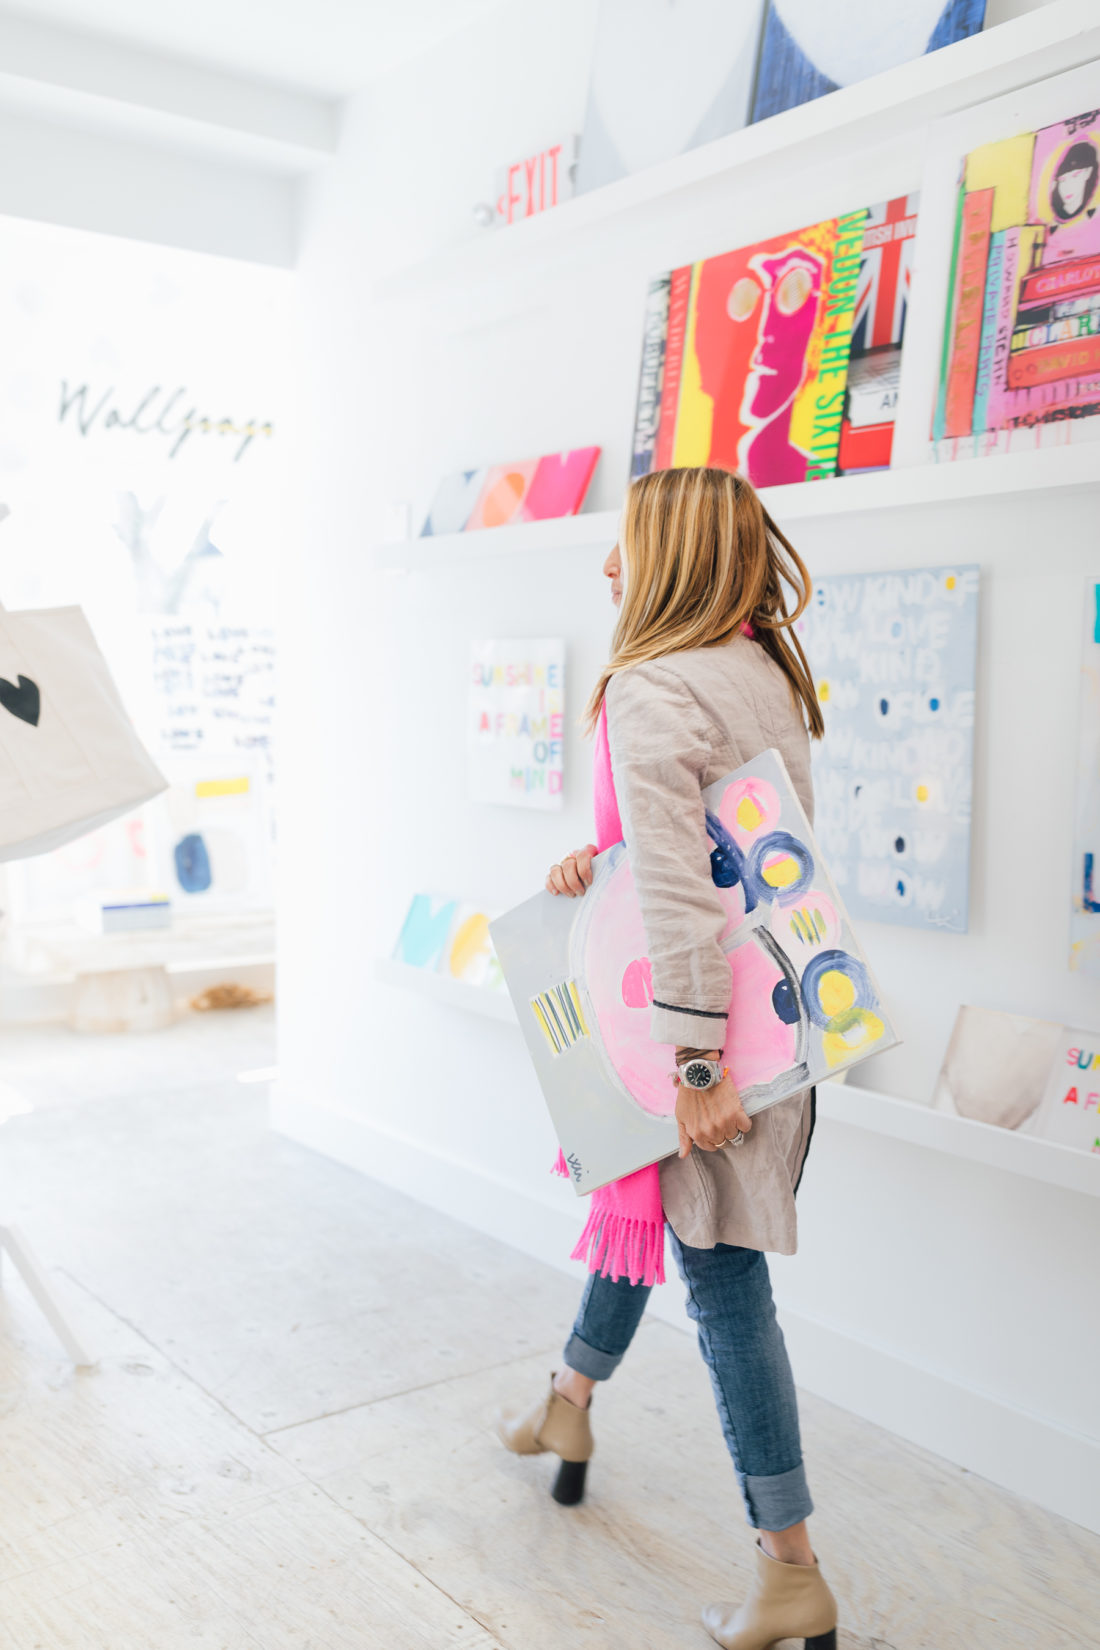 Kerri Rosenthal walks around her colorful Westport shop and talks design with Eva Amurri Martino of Happily Eva After